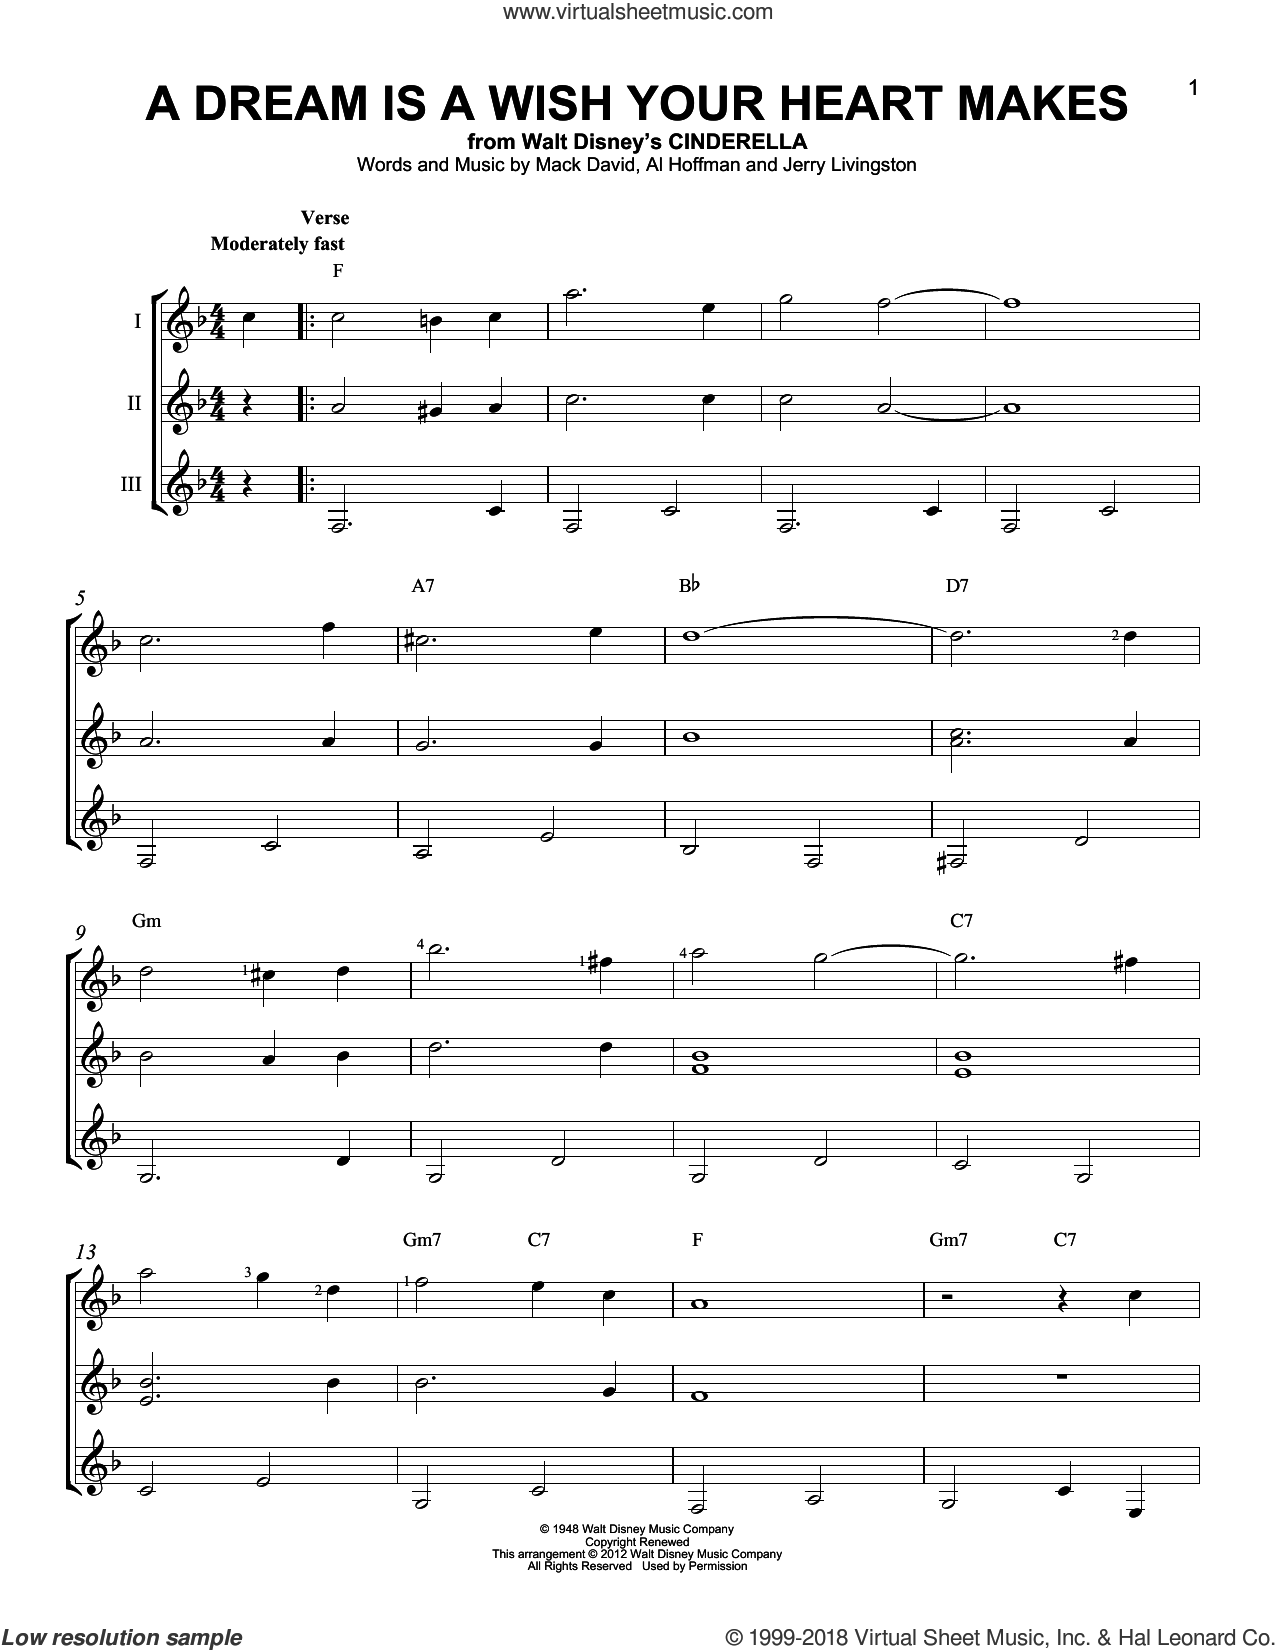 A Dream Is A Wish Your Heart Makes sheet music for guitar ensemble by Al Hoffman, Linda Ronstadt, Miscellaneous, Jerry Livingston, Mack David and Mack David, Al Hoffman and Jerry Livingston, intermediate skill level